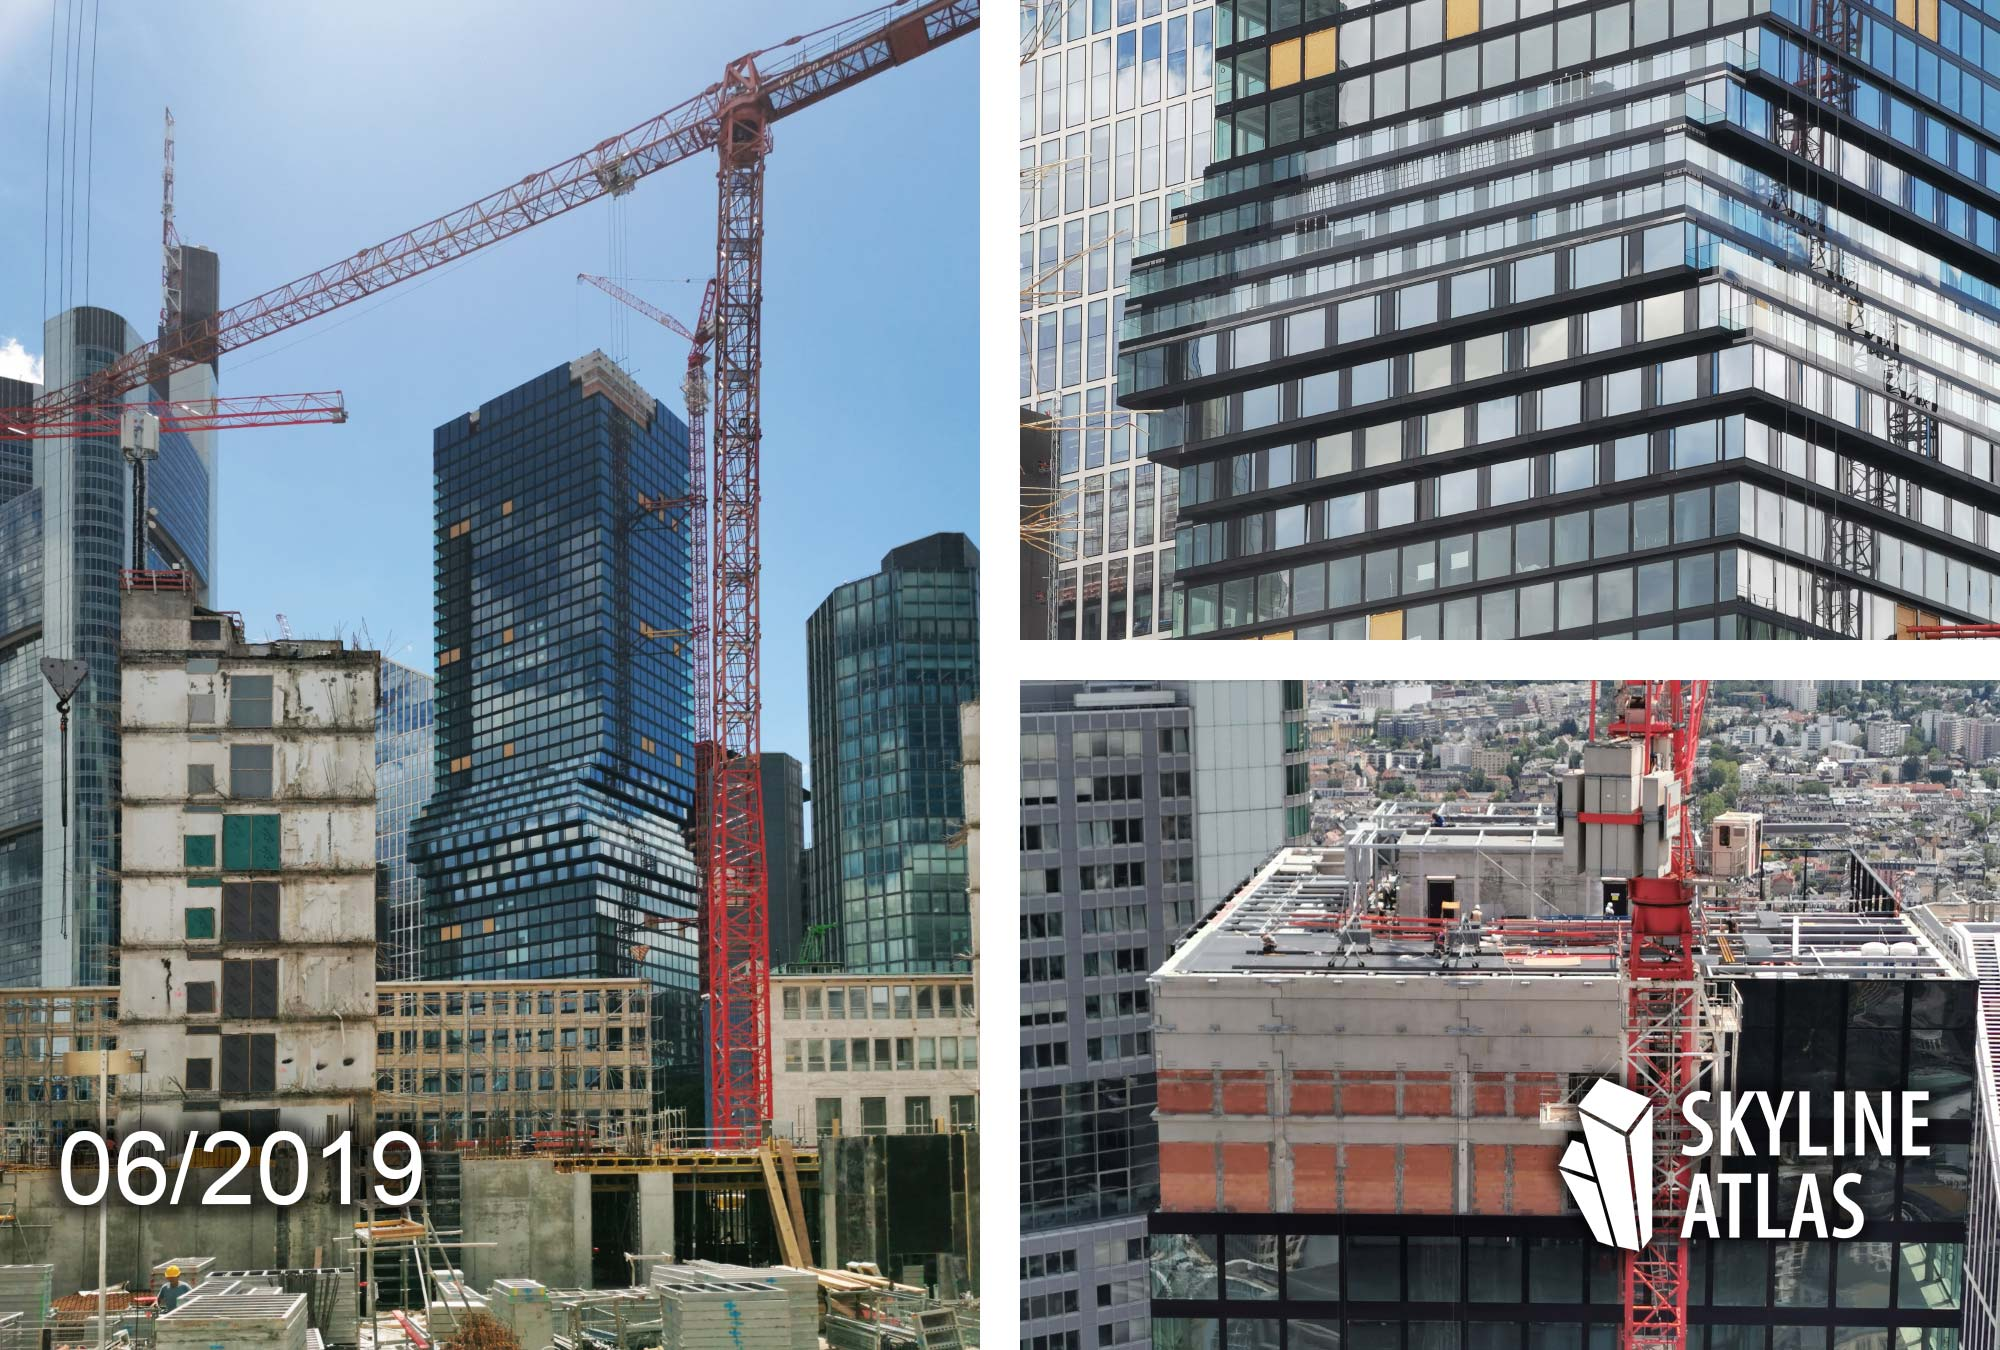 OmniTurm in Frankfurt - one of the tallest new skyscrapers in Europa - Construction site as of June 2019